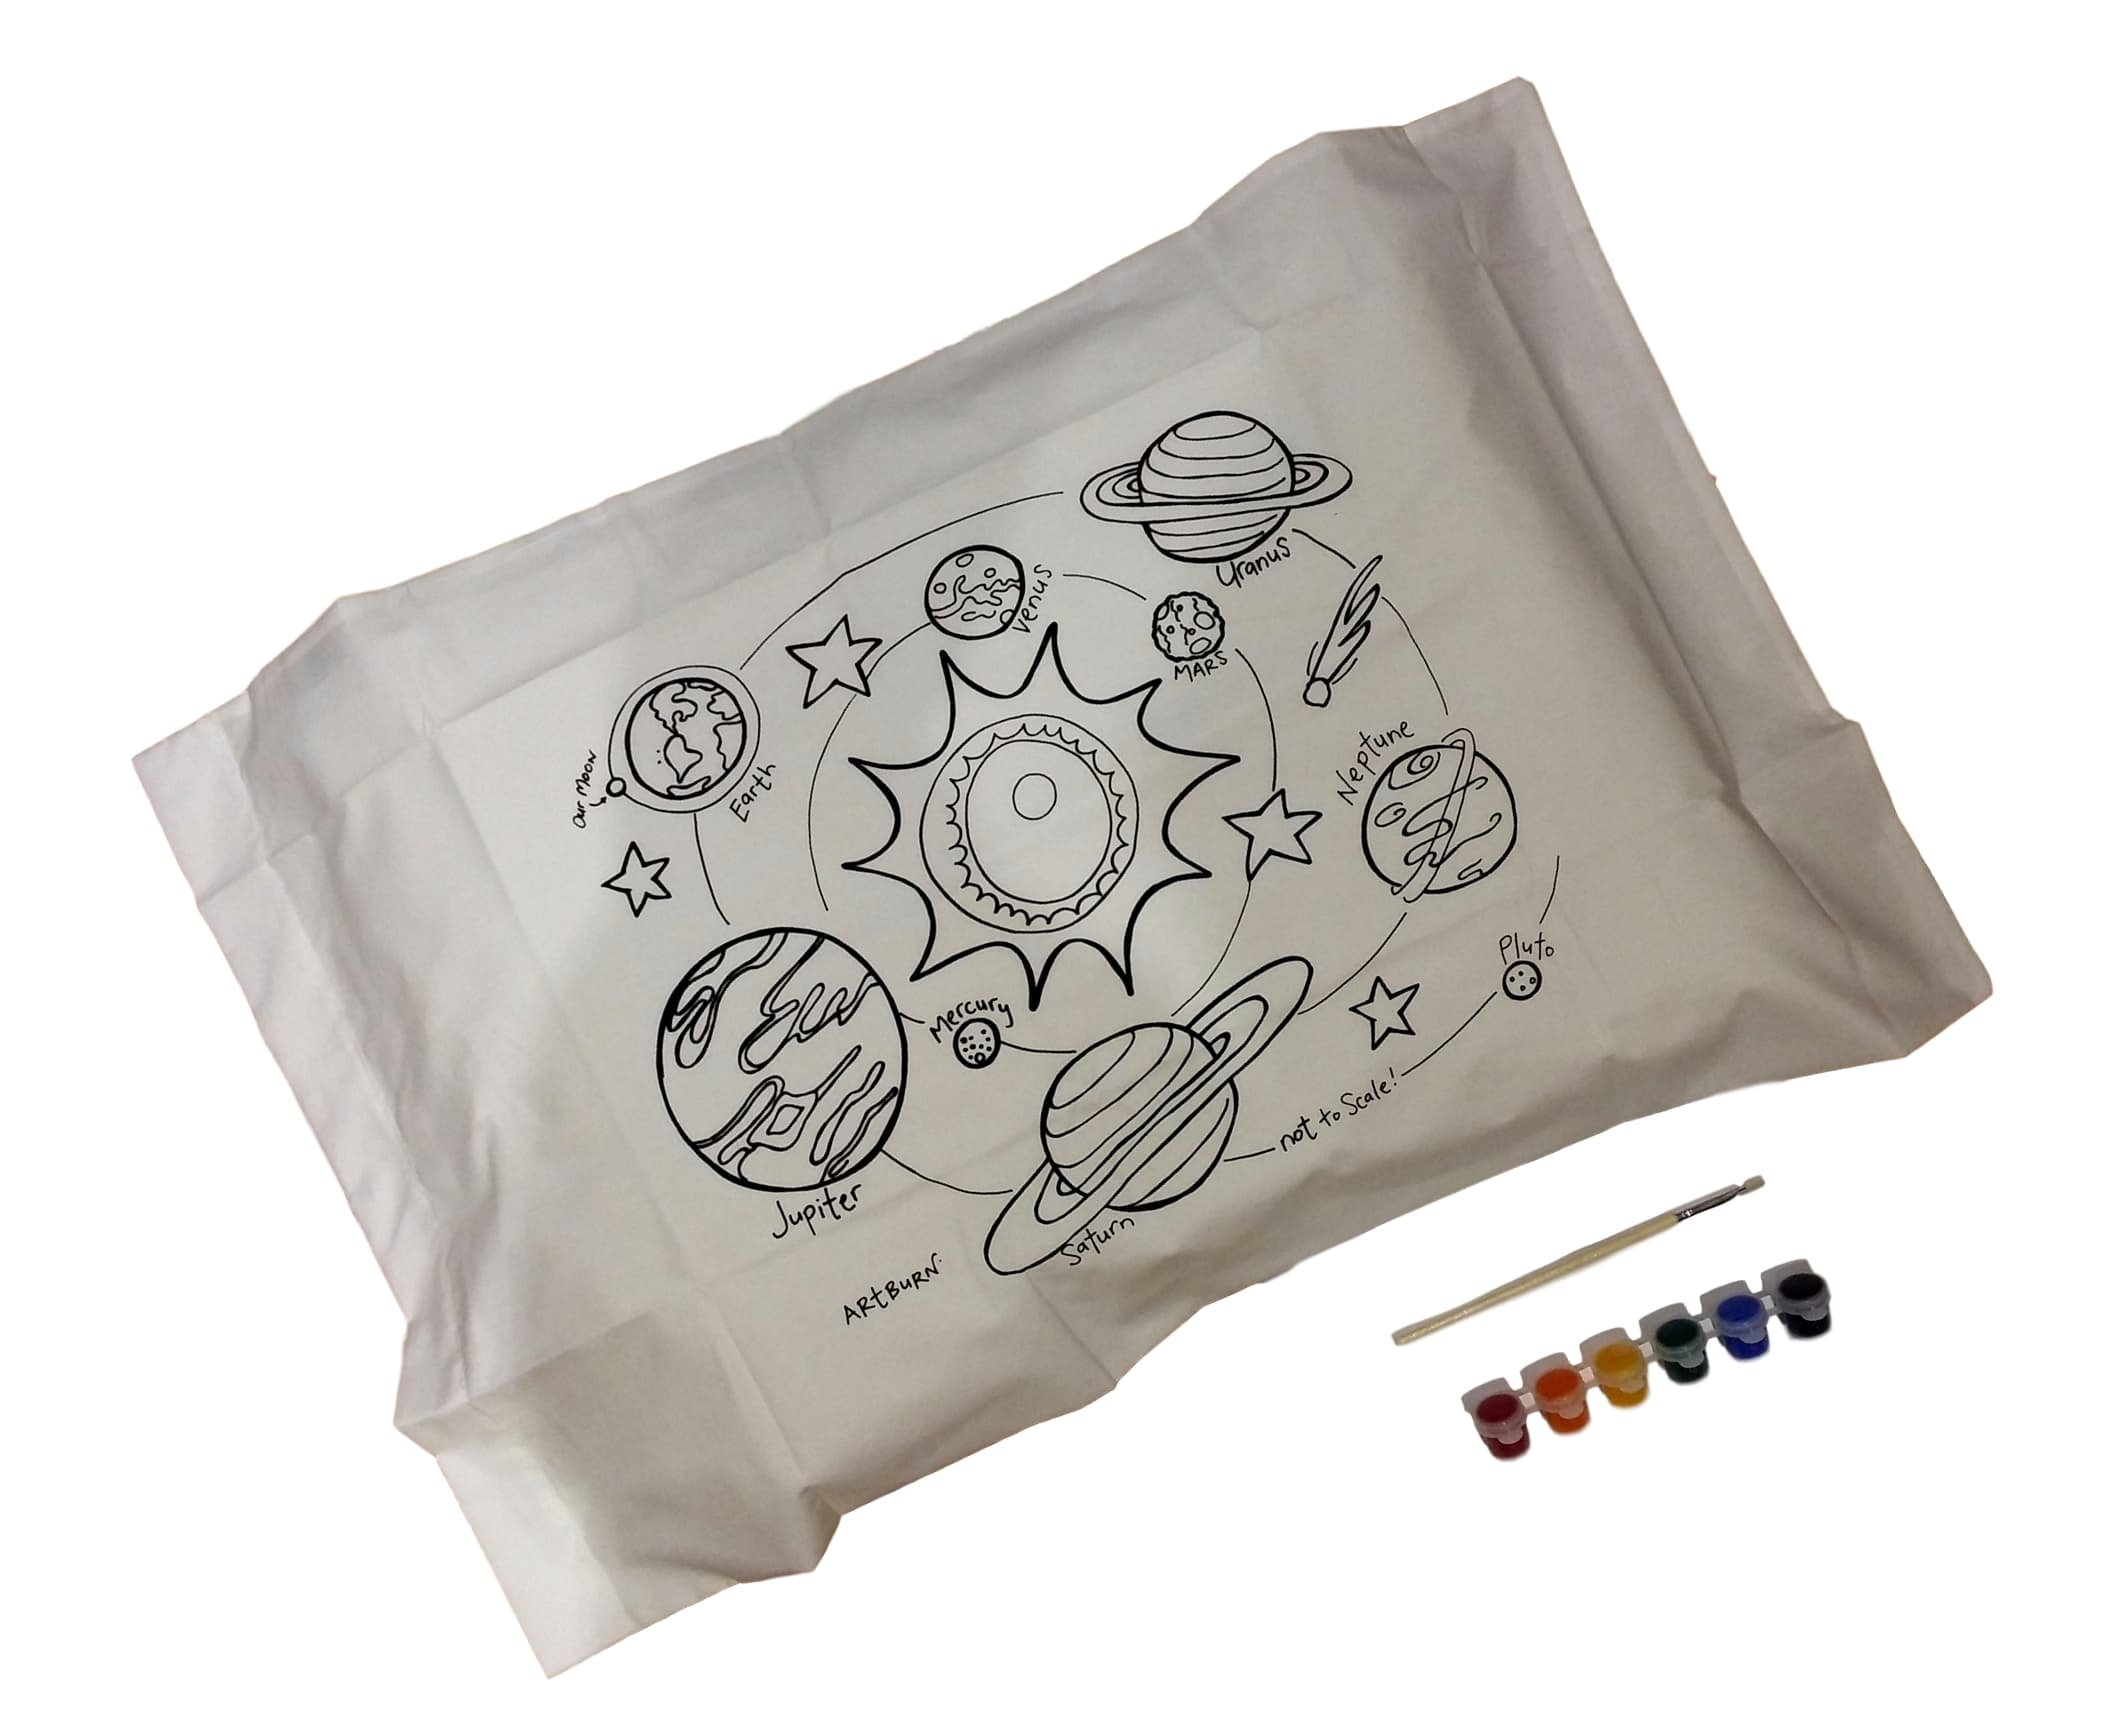 Artburn Pillowcase With Fabric Painting Kit For Kids (Our Solar System)